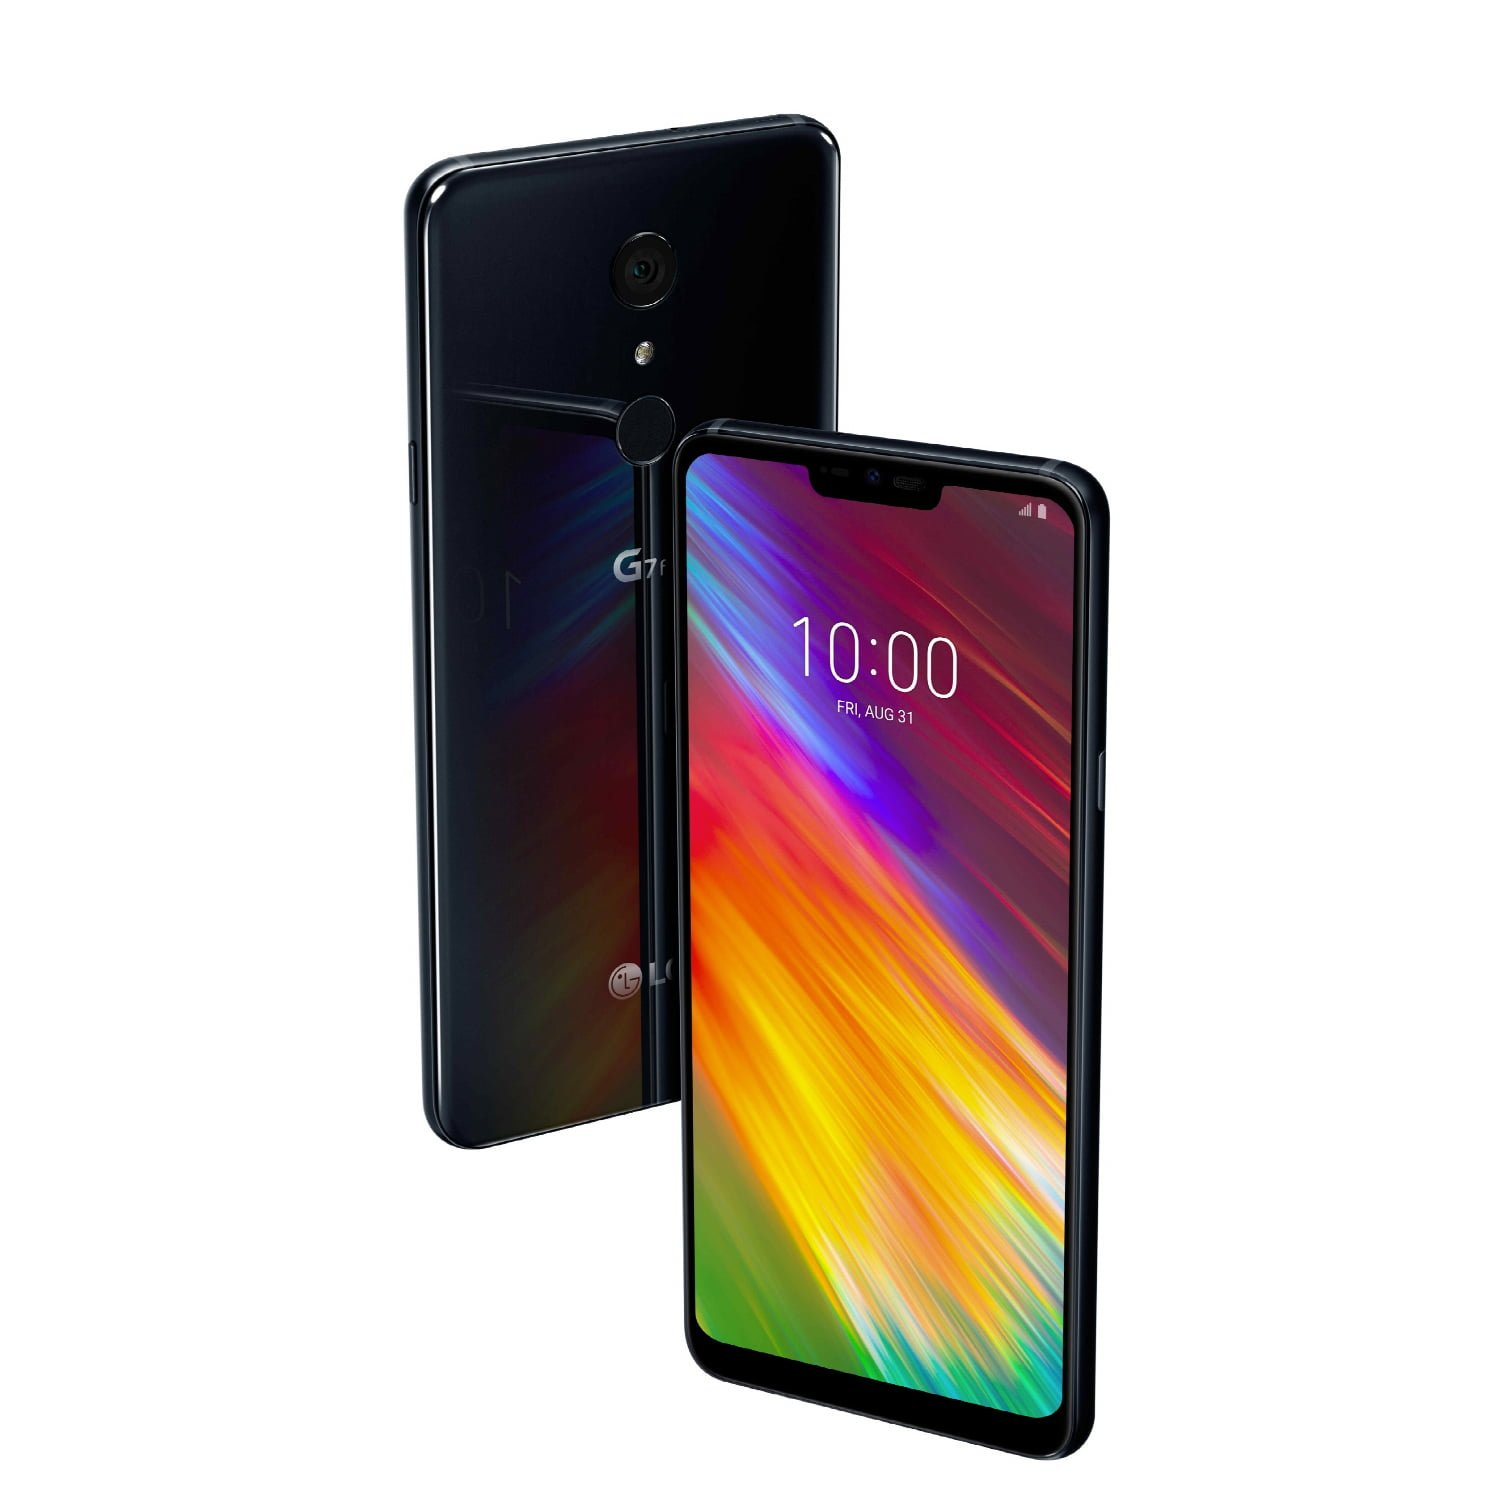 Tabletowo.pl LG G7 matches the prize worth PLN 1,300 from today's sales. LG New Promotion